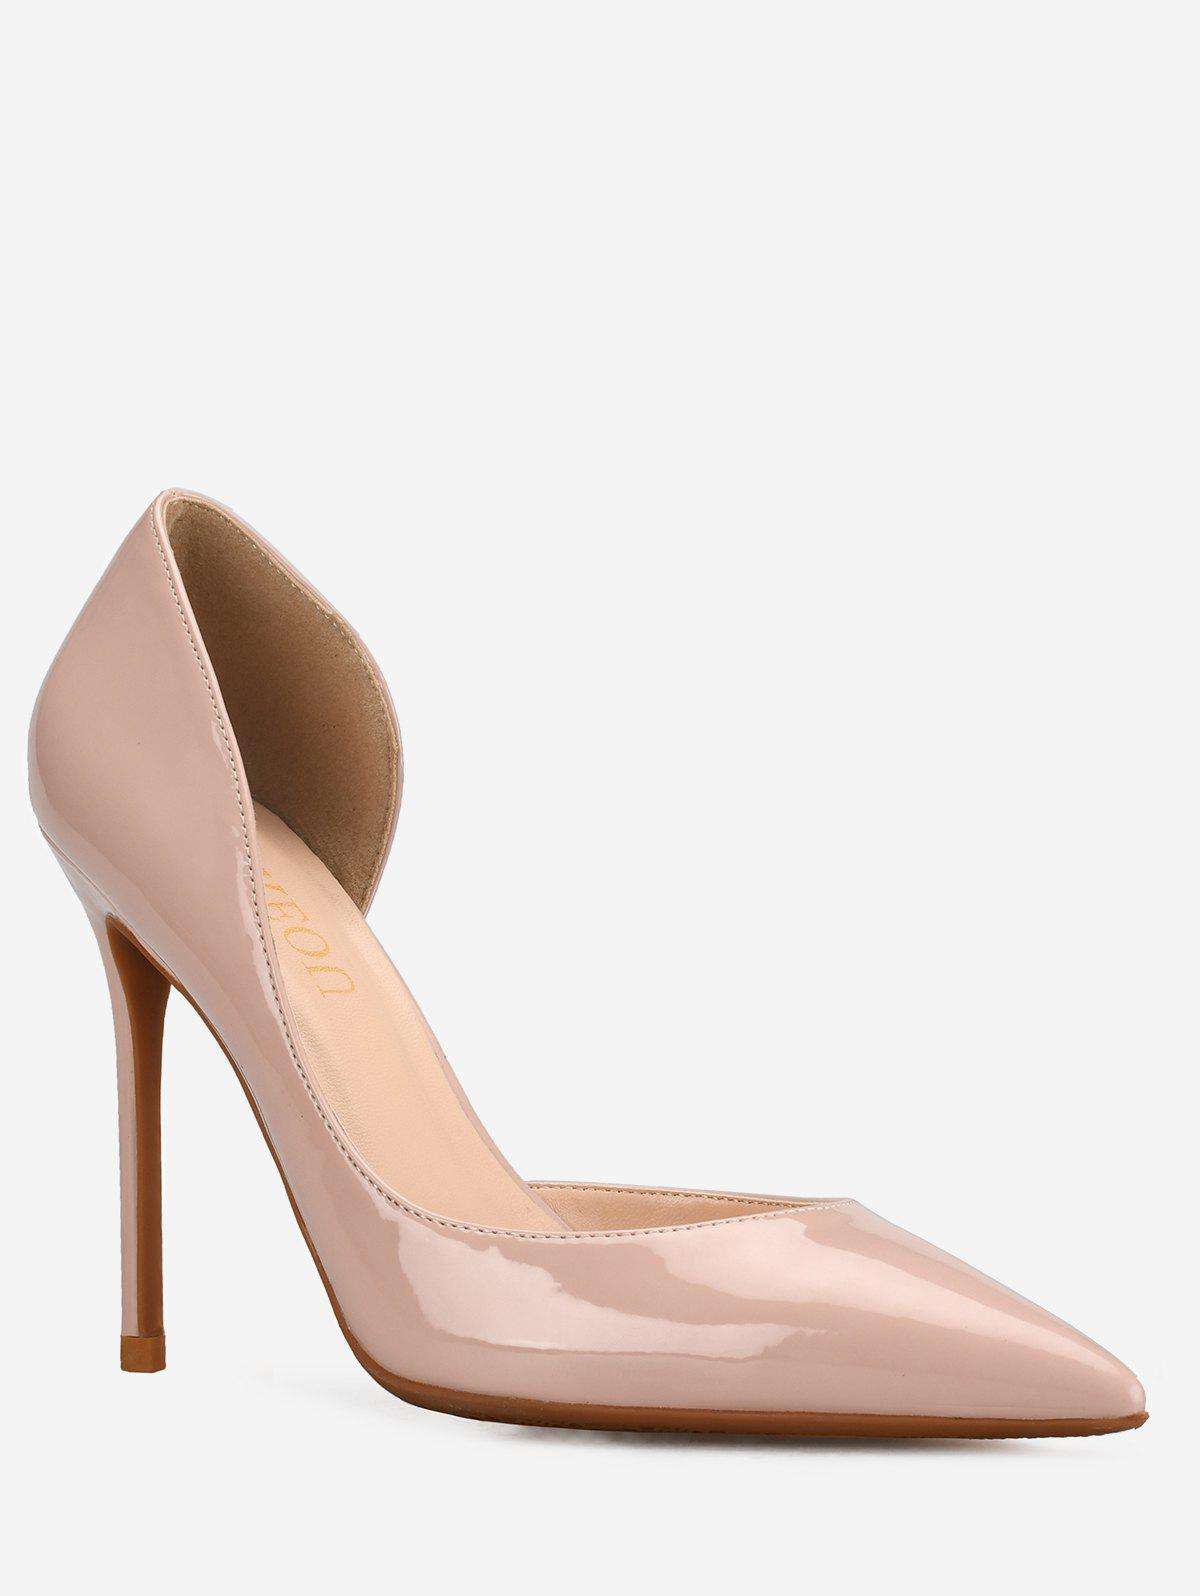 Cheap GOXEOU High Heel Chic Party Pointed Toe Pumps